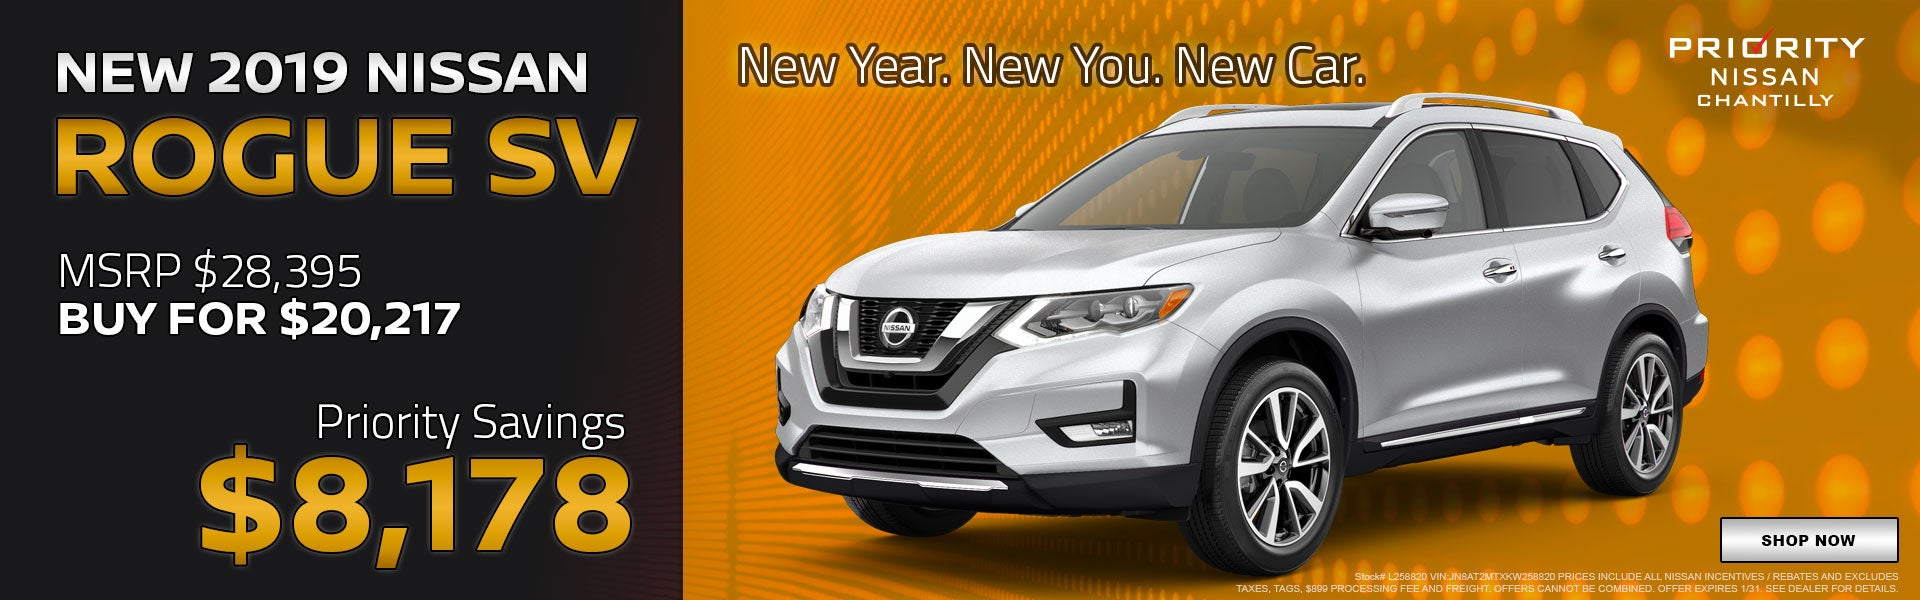 Priority Nissan Chantilly >> Nissan Dealer In Chantilly Va Used Cars Chantilly